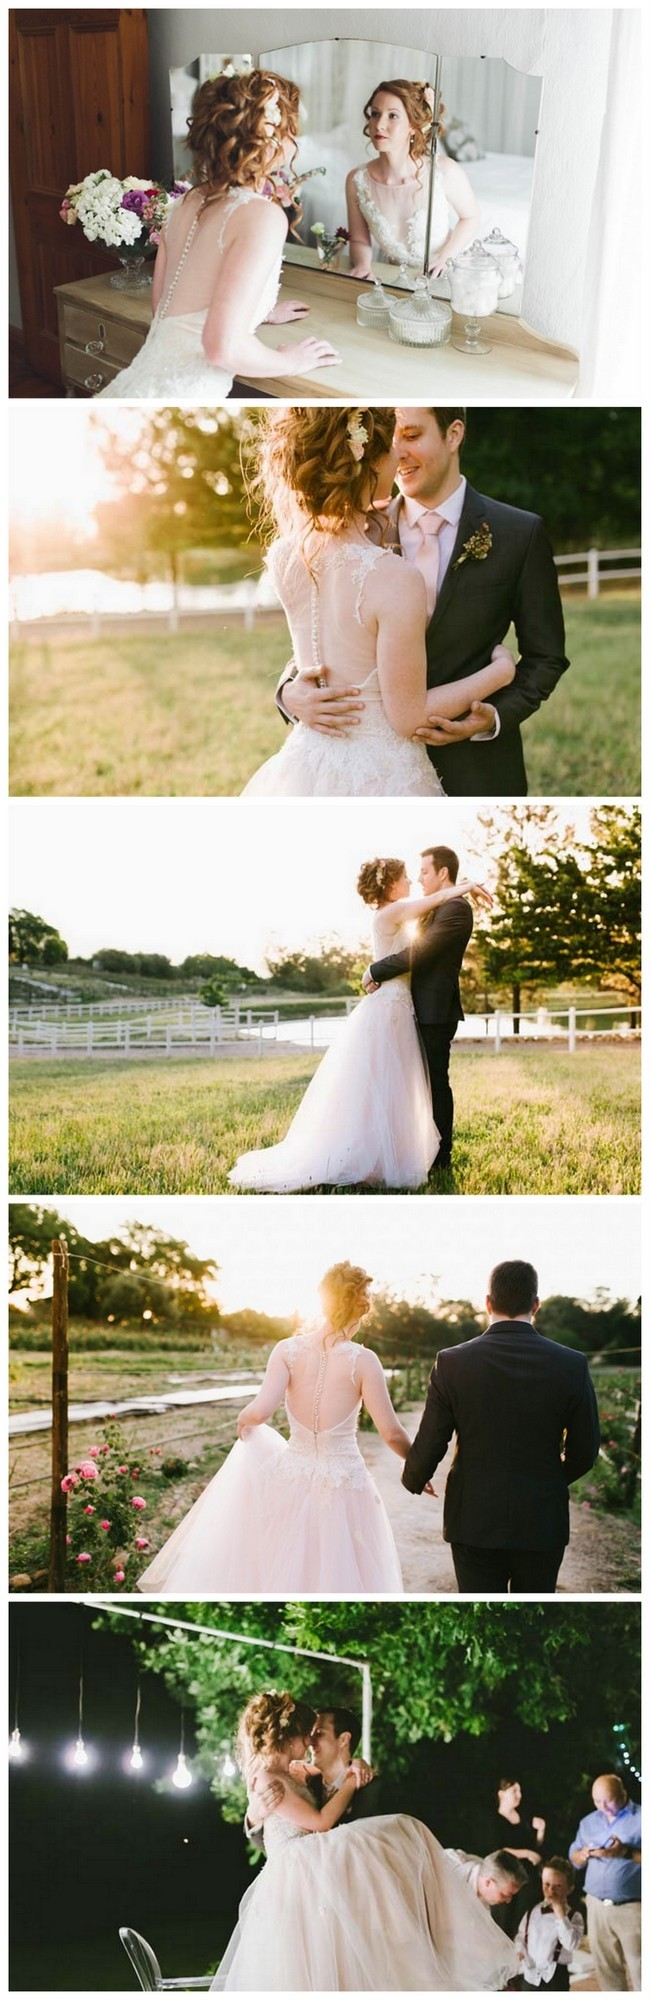 Such a beautiful example of real story telling wedding photography by Claire Thomson Photography